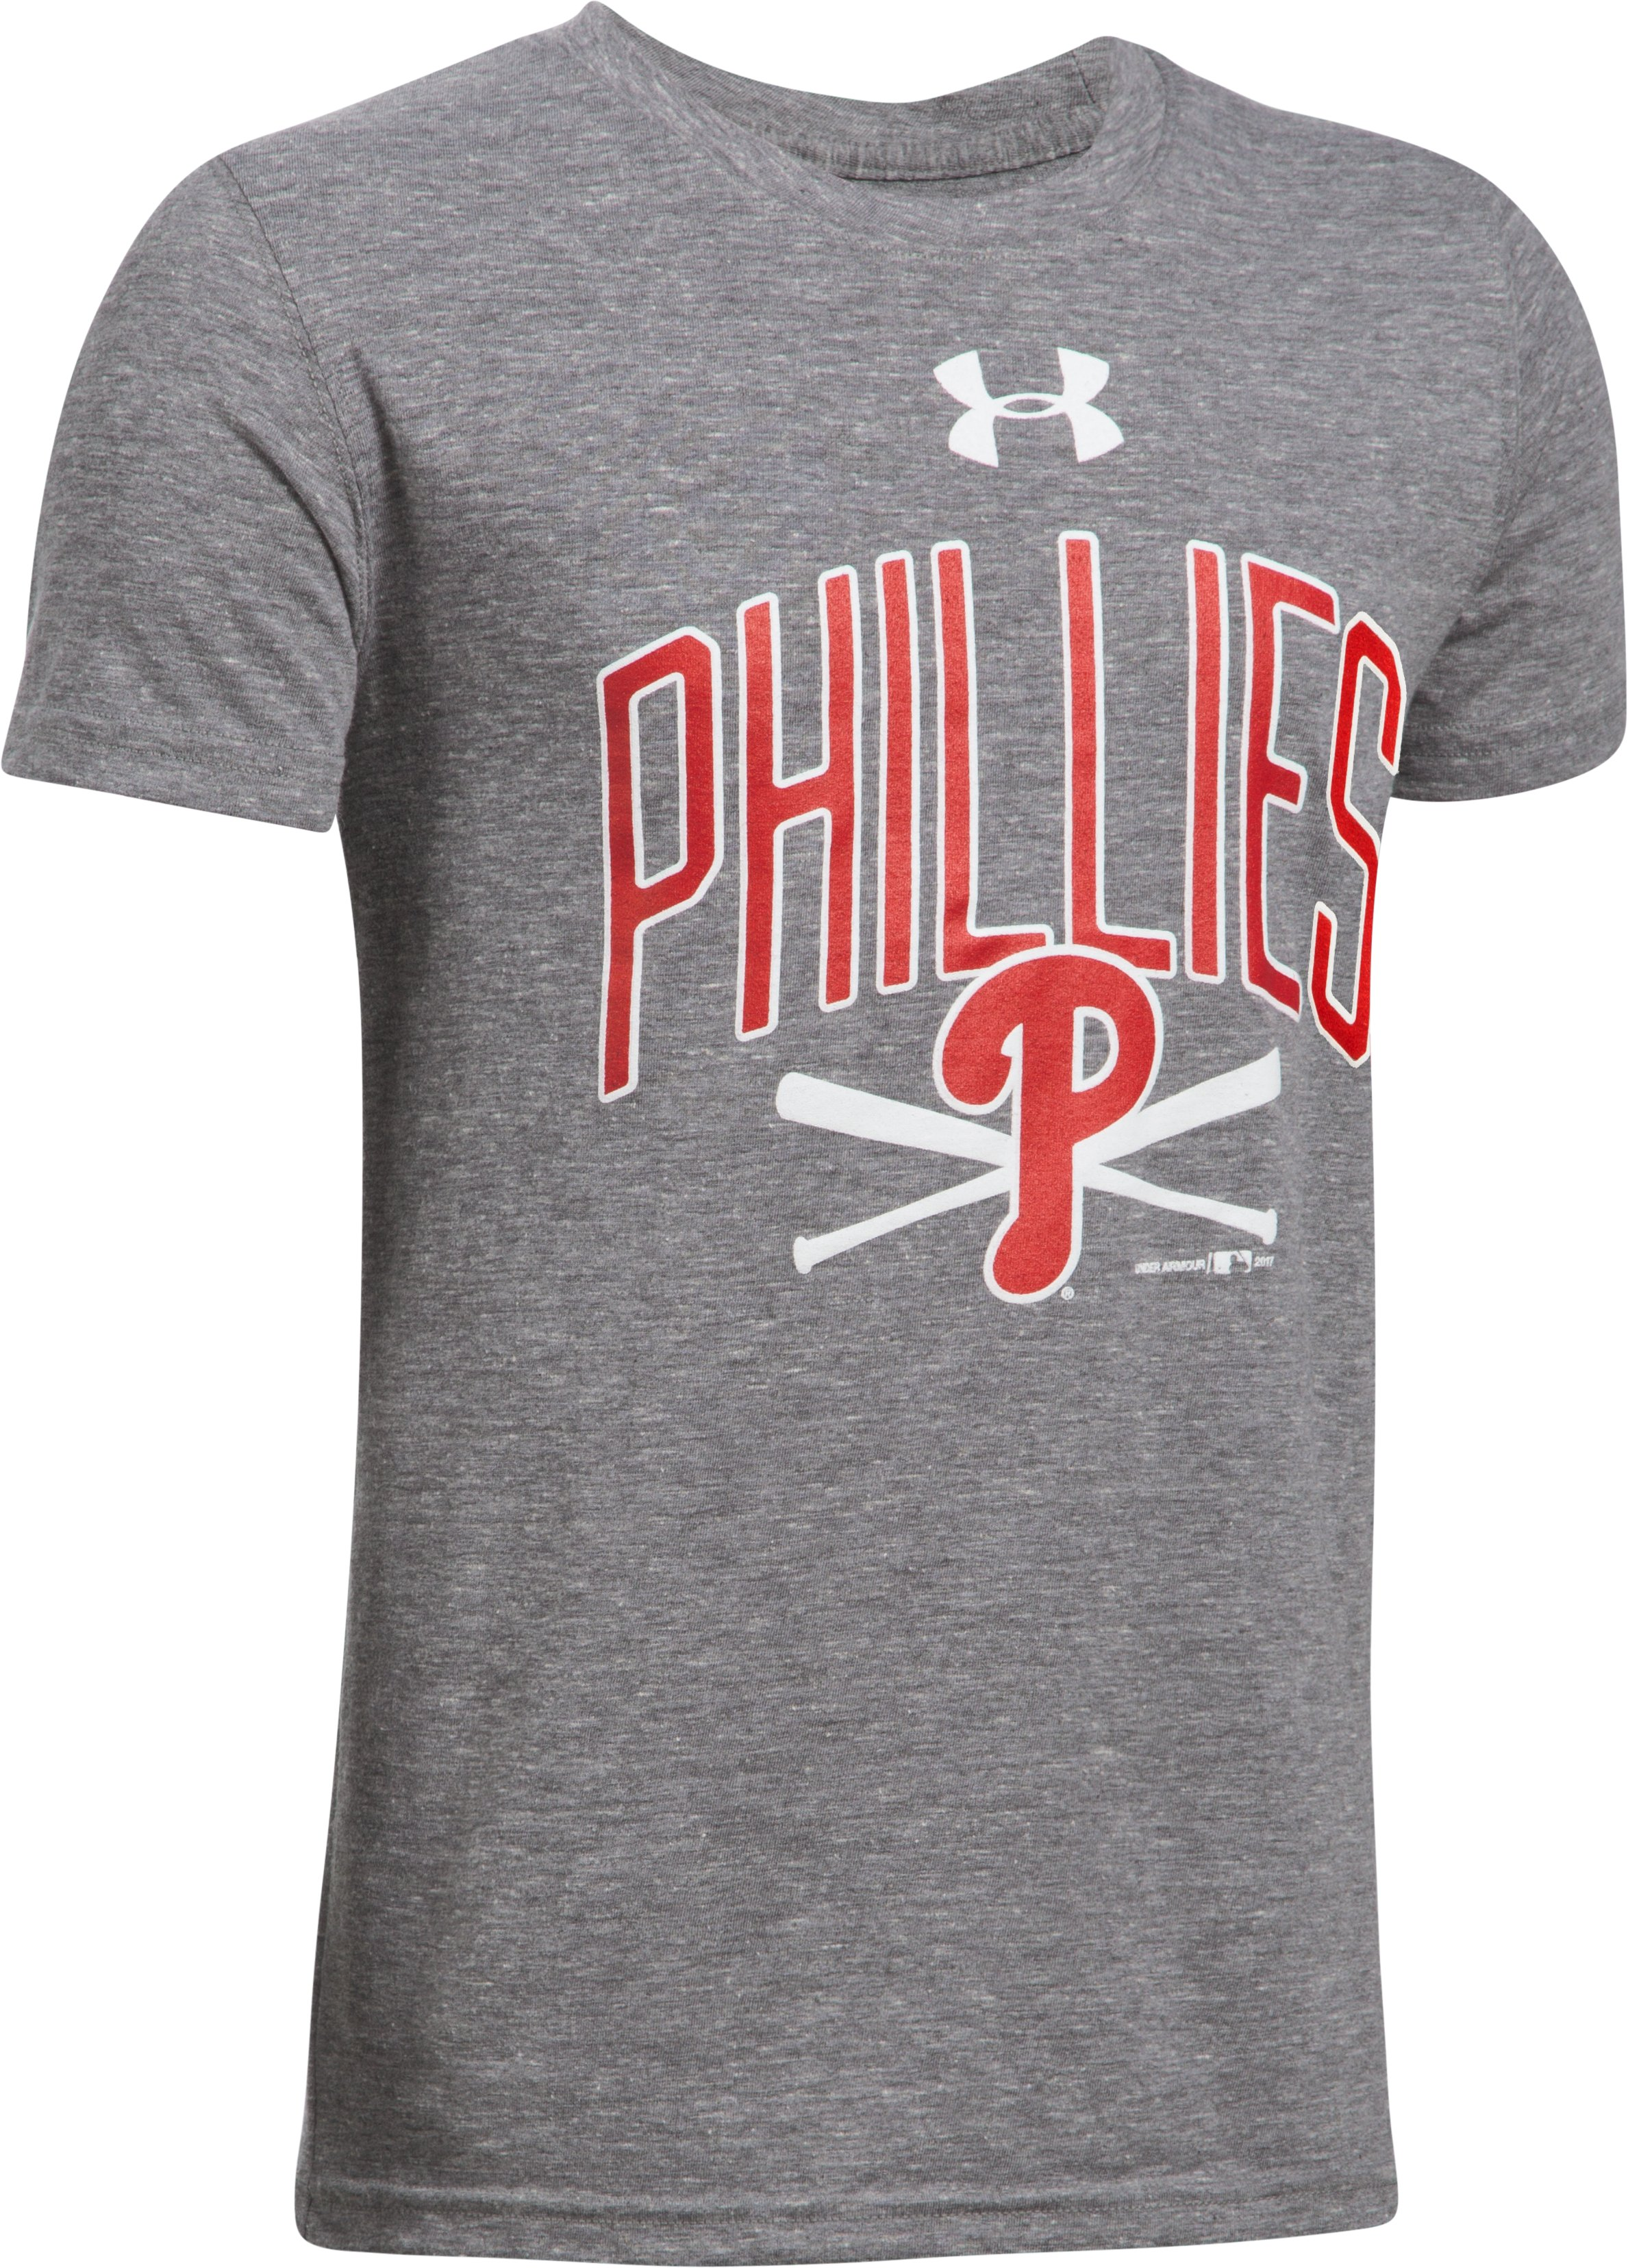 Boys' Philadelphia Phillies Tri-Blend T-Shirt, True Gray Heather,